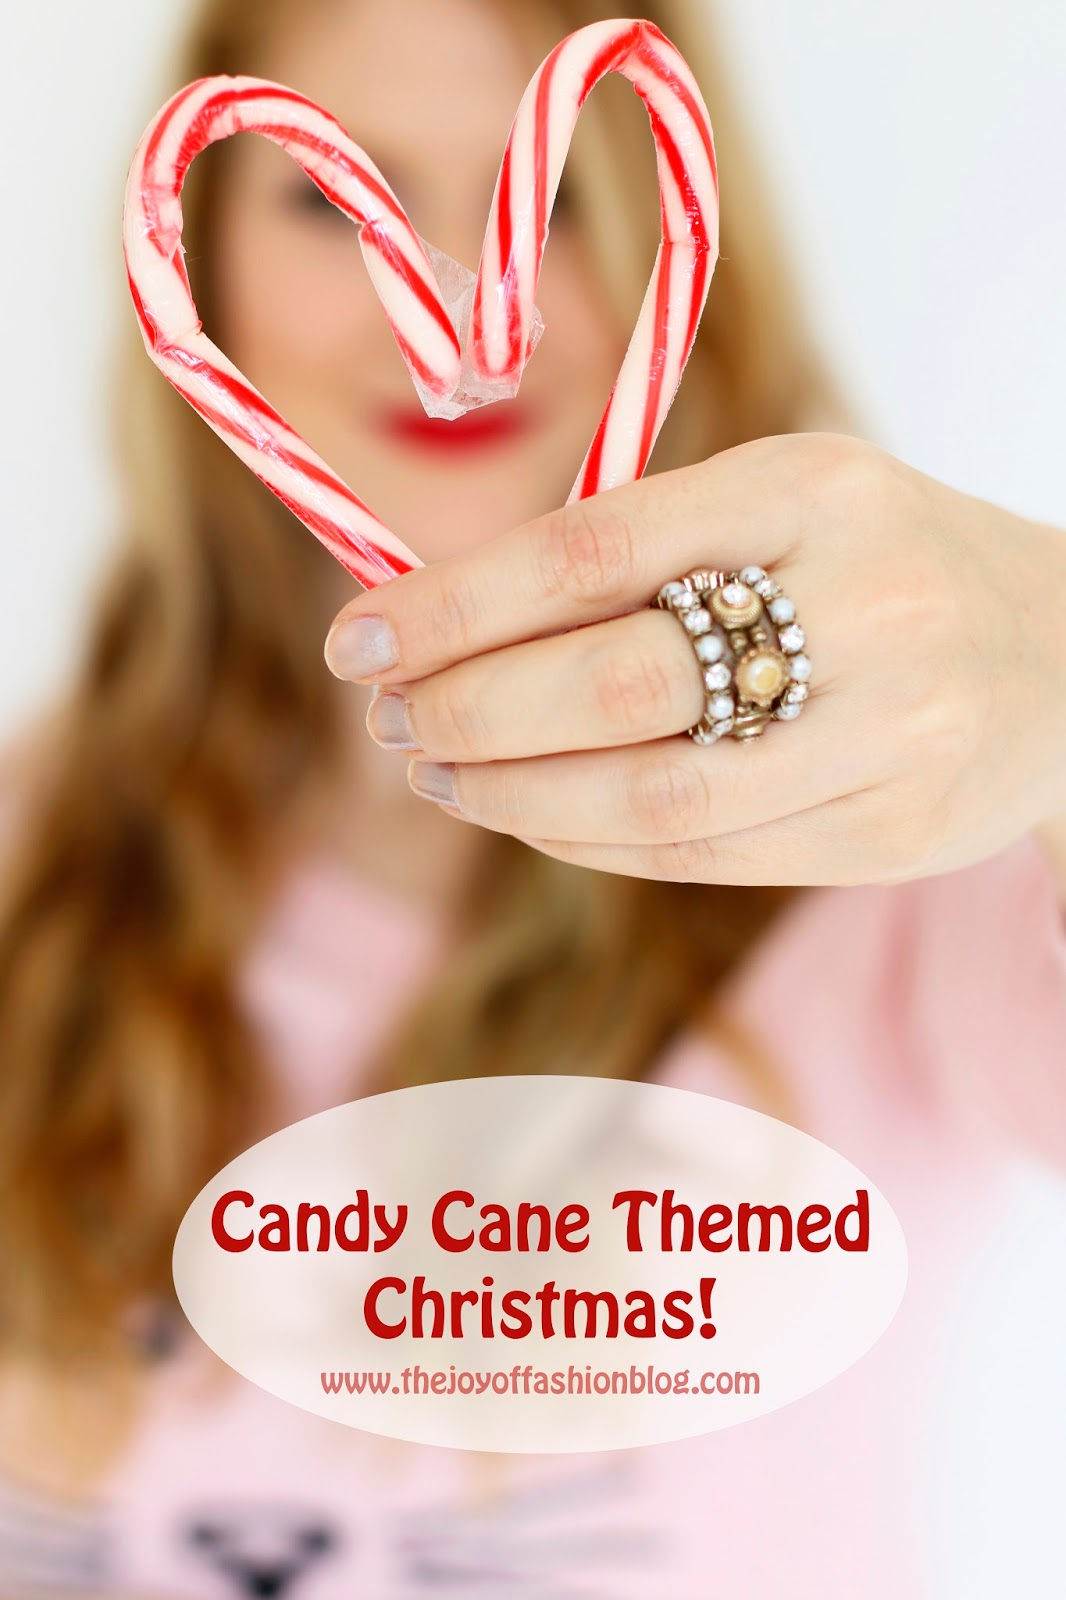 Click through for ideas on how to celebrate a Candy Cane themed Christmas!